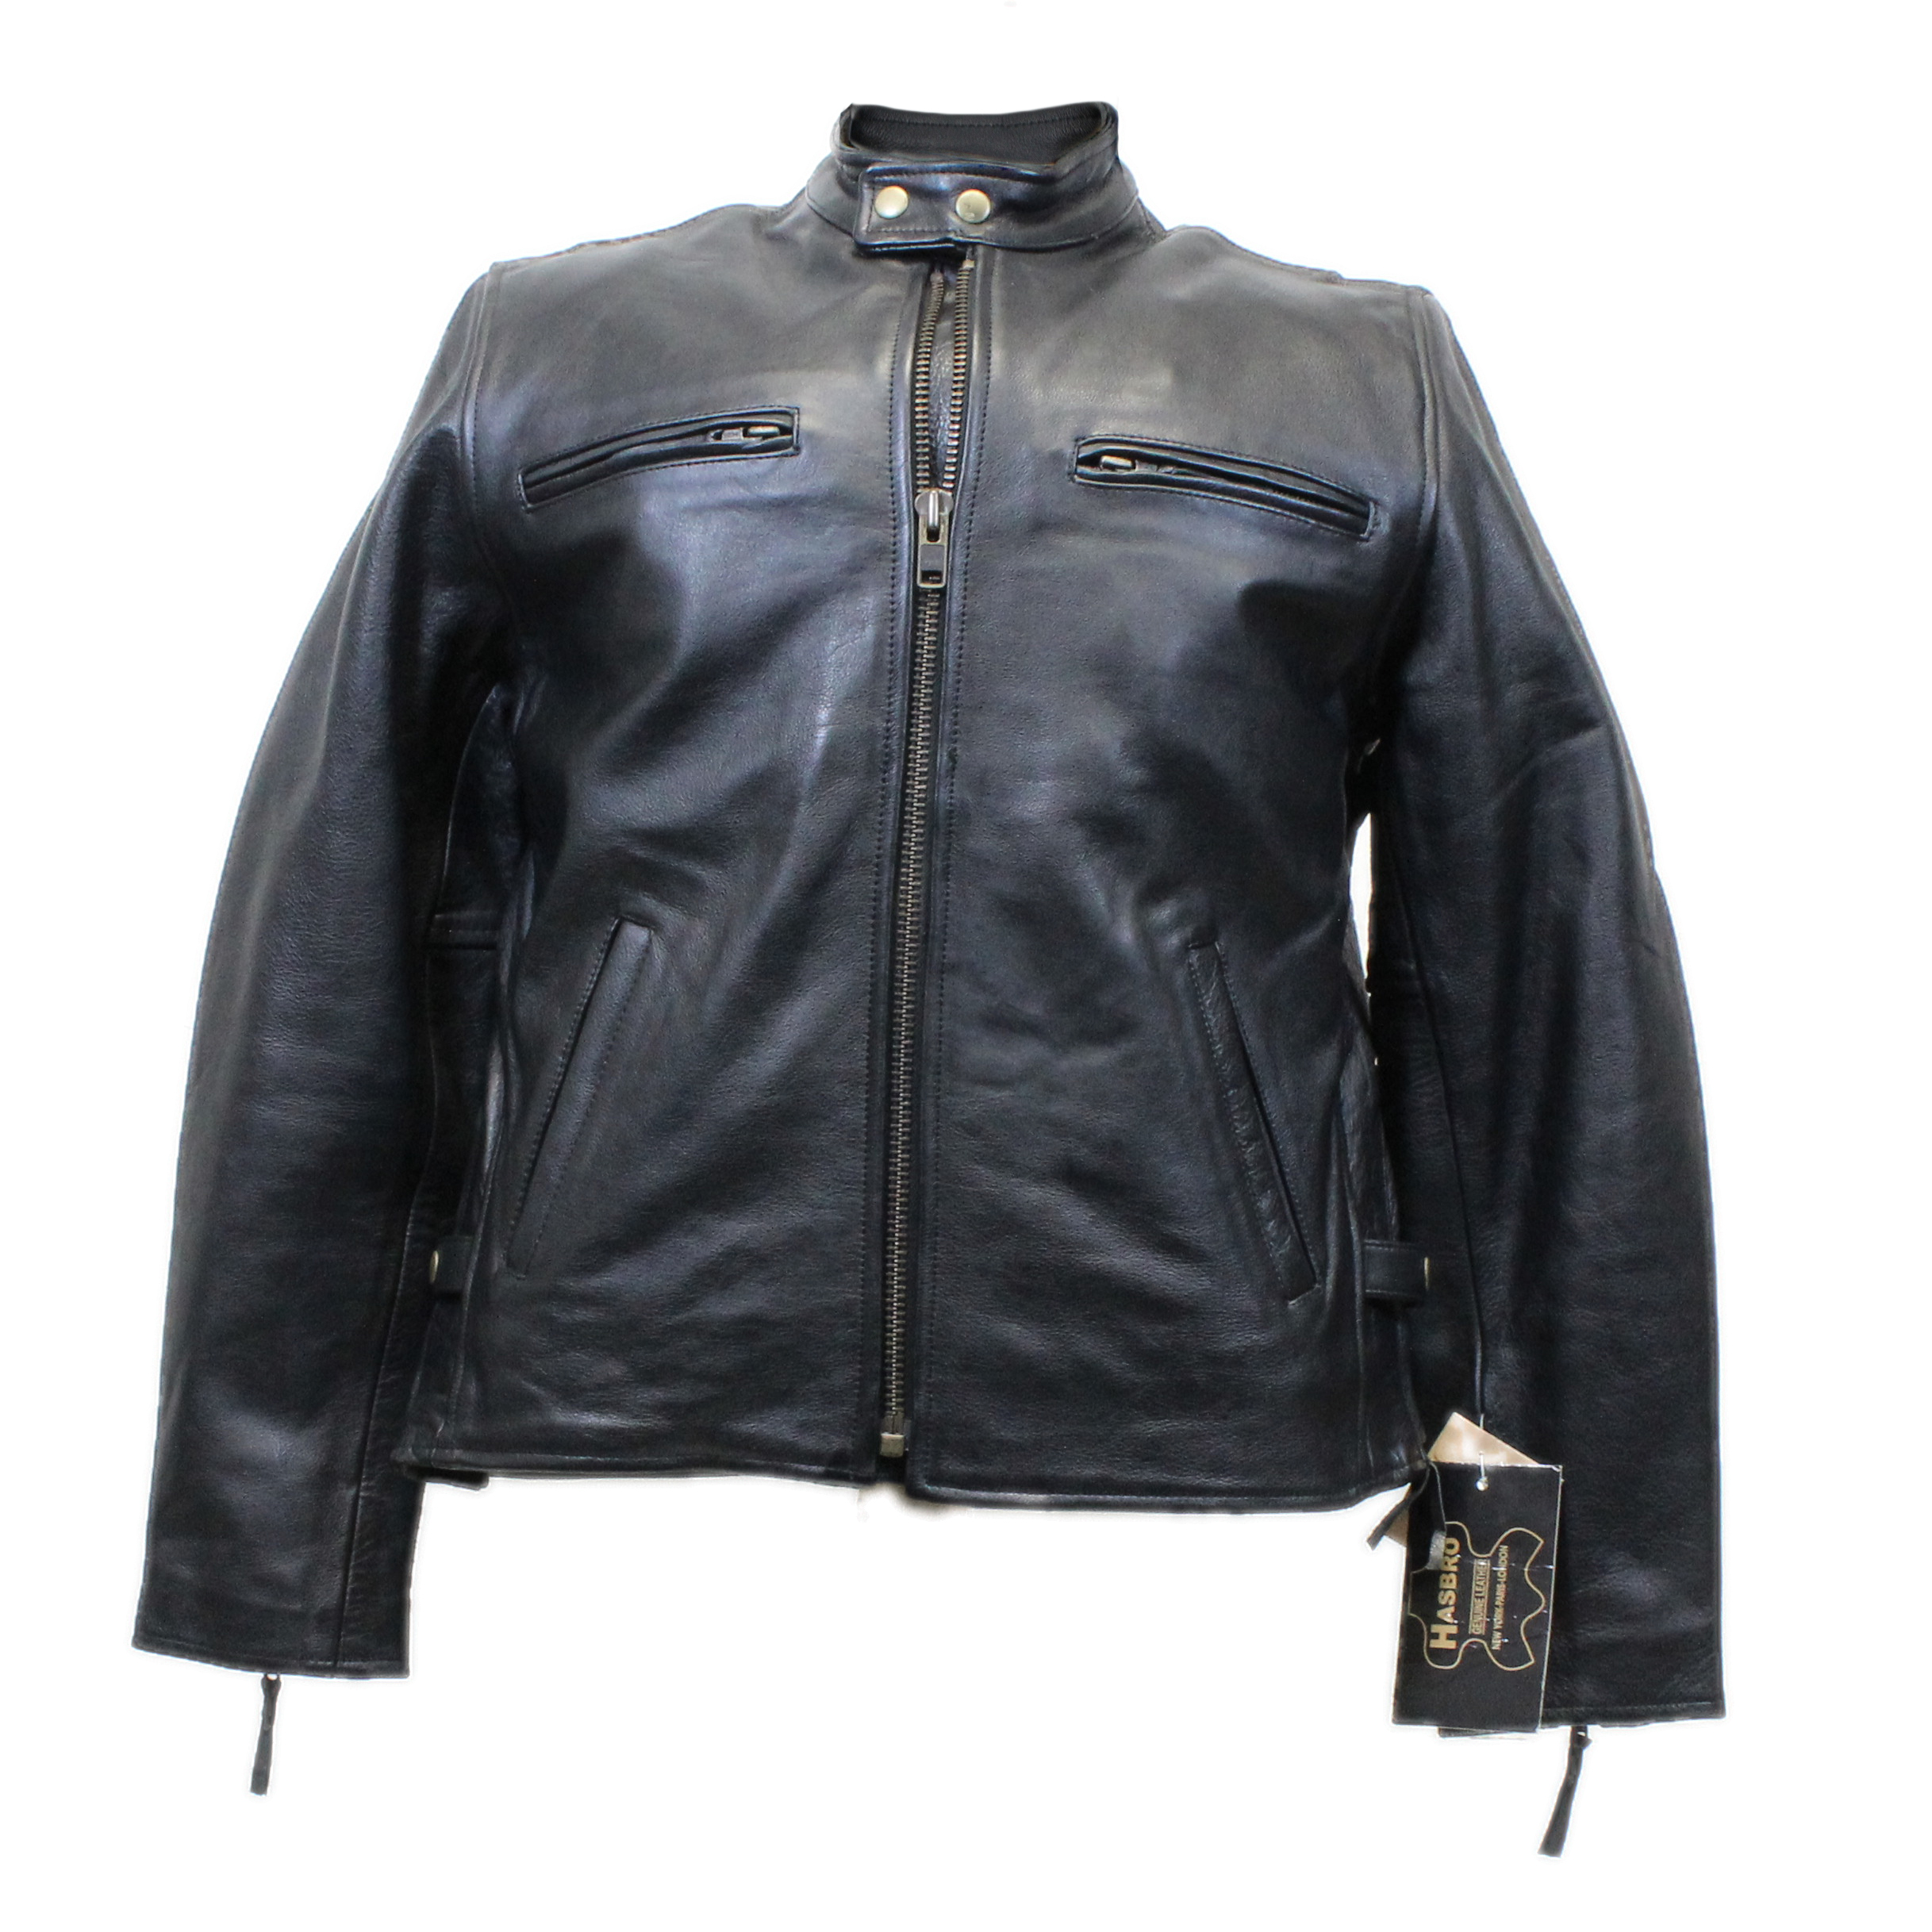 Mens Cut Off Motorcycle Waistcoat Cowhide Leather Black Biker Vest Jacket Men's Clothing Clothing, Shoes & Accessories